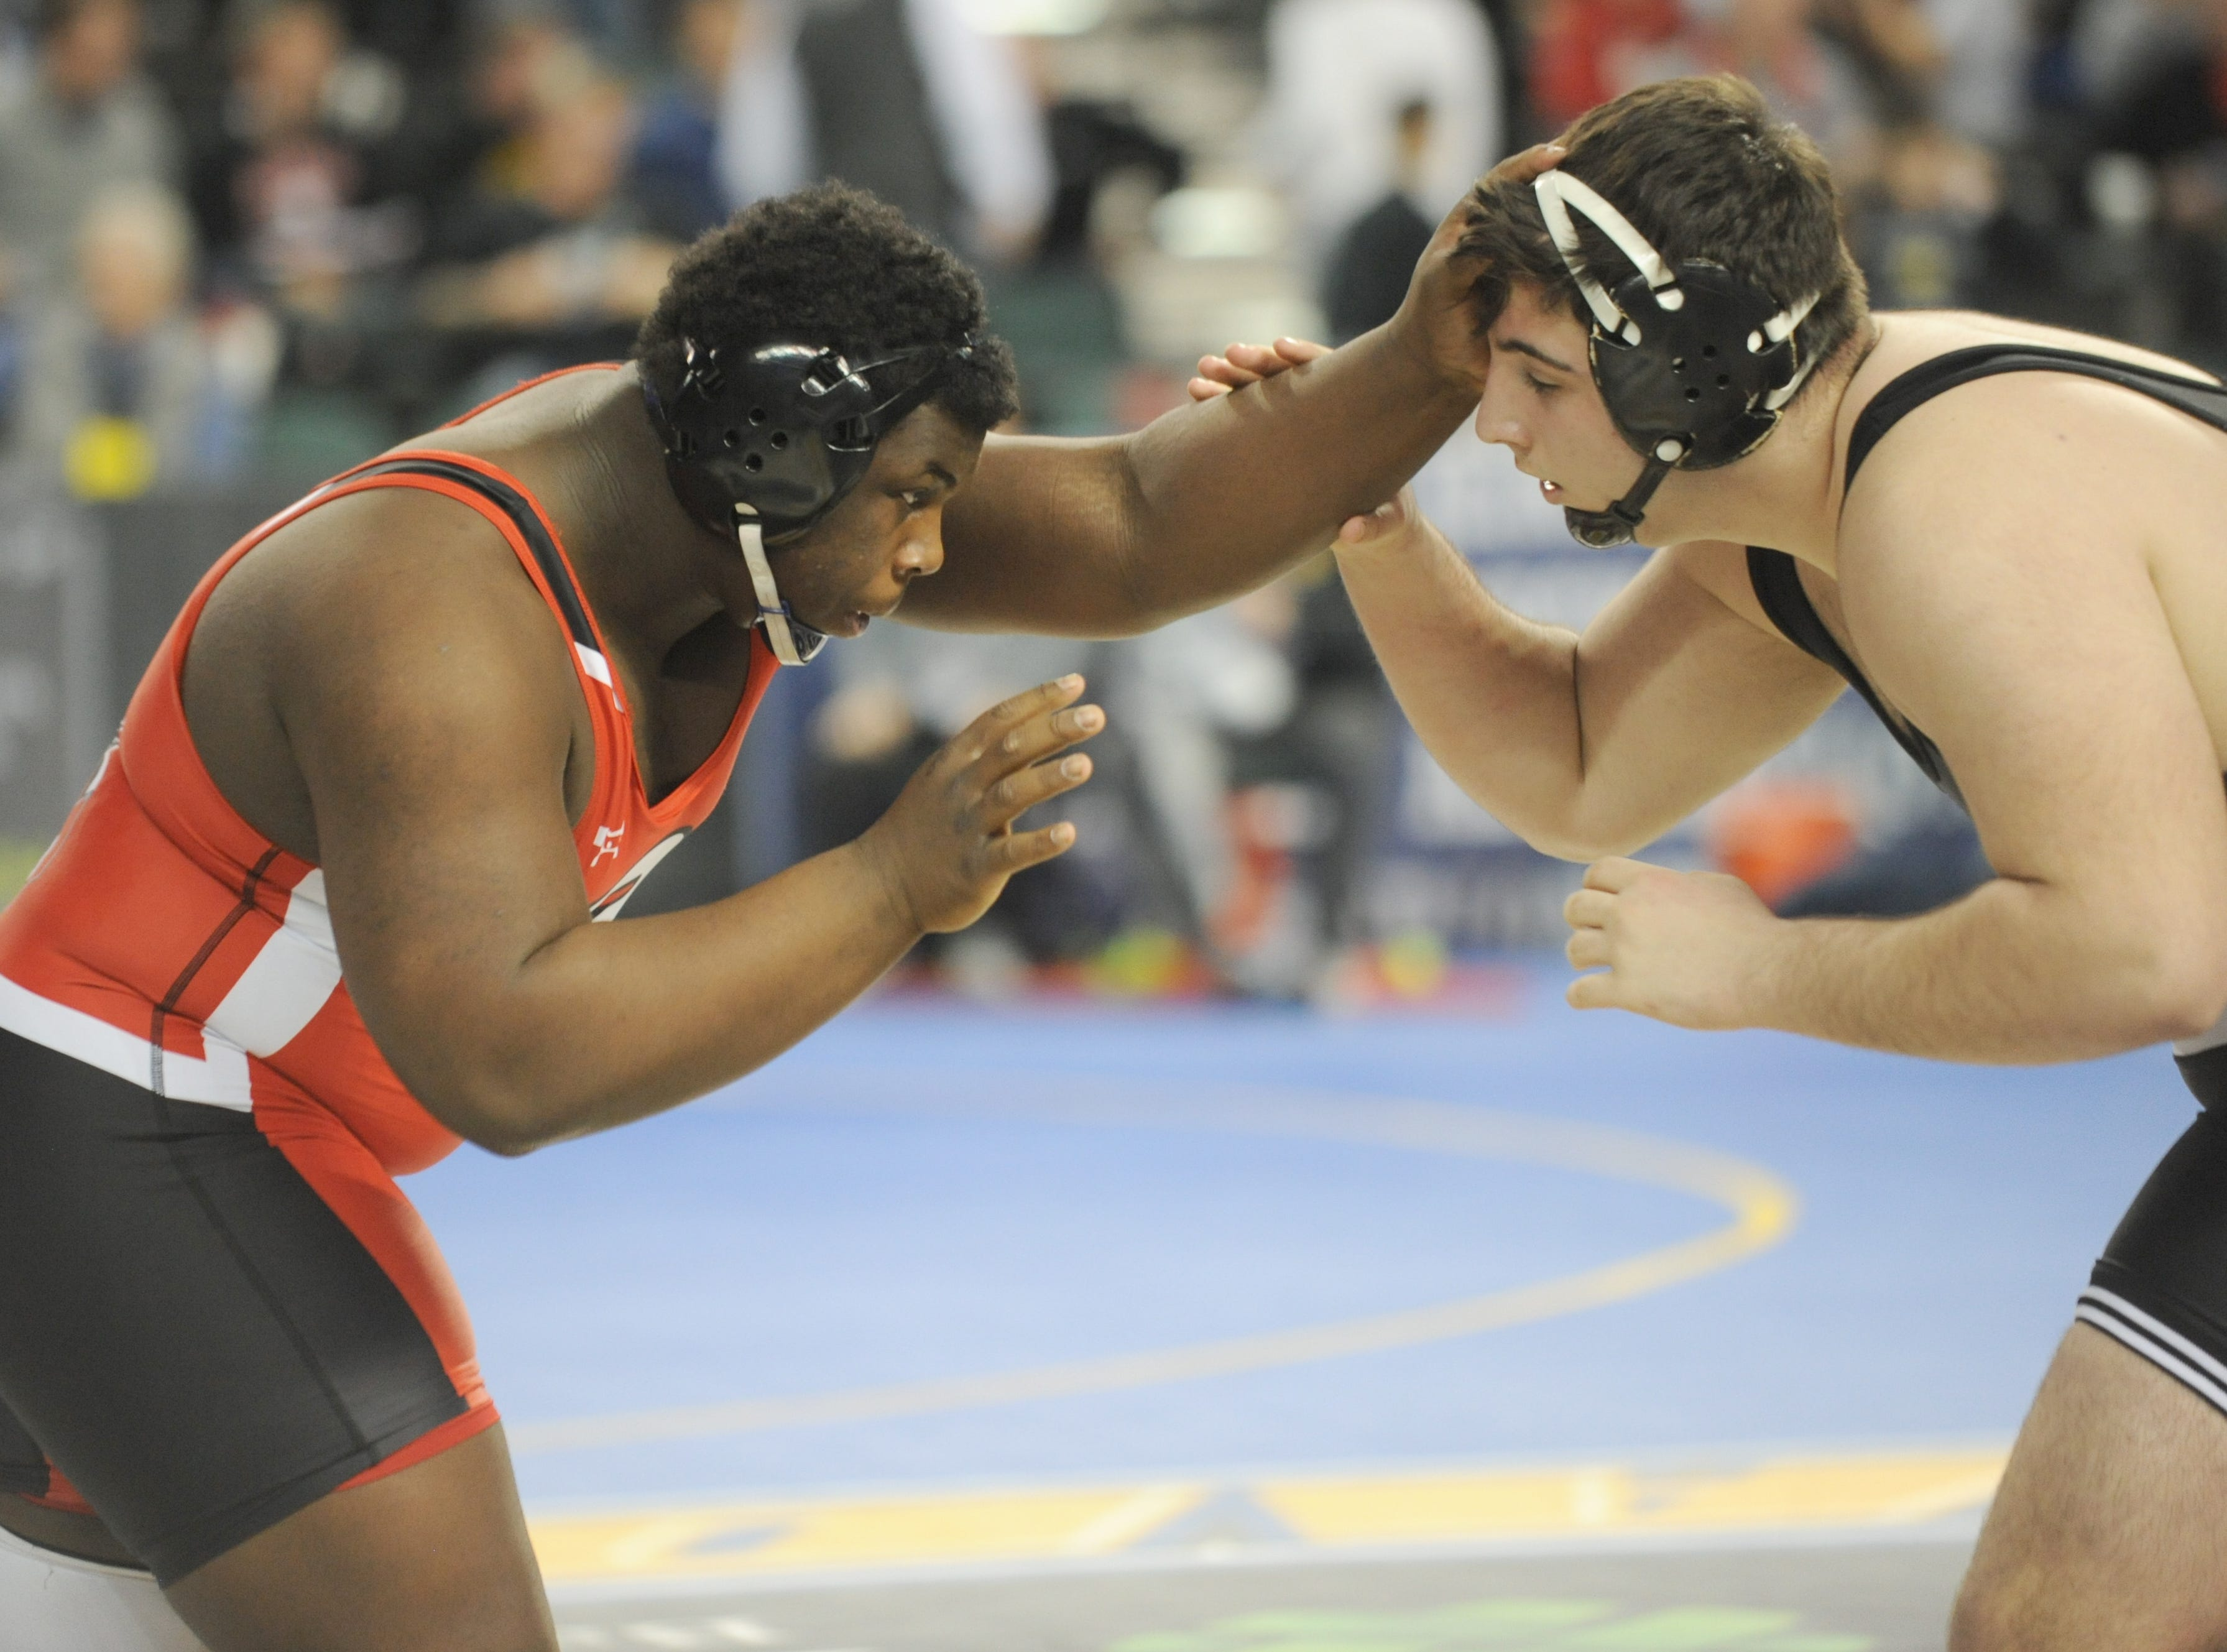 Bound Brook's Jervey Sistrunk wrestles West Essex's Bardhyl Gashi in a 285-pound quarterfinal bout during the NJSIAA Individual Wrestling Championships at Boardwalk Hall in Atlantic City, Friday, March 1, 2019.